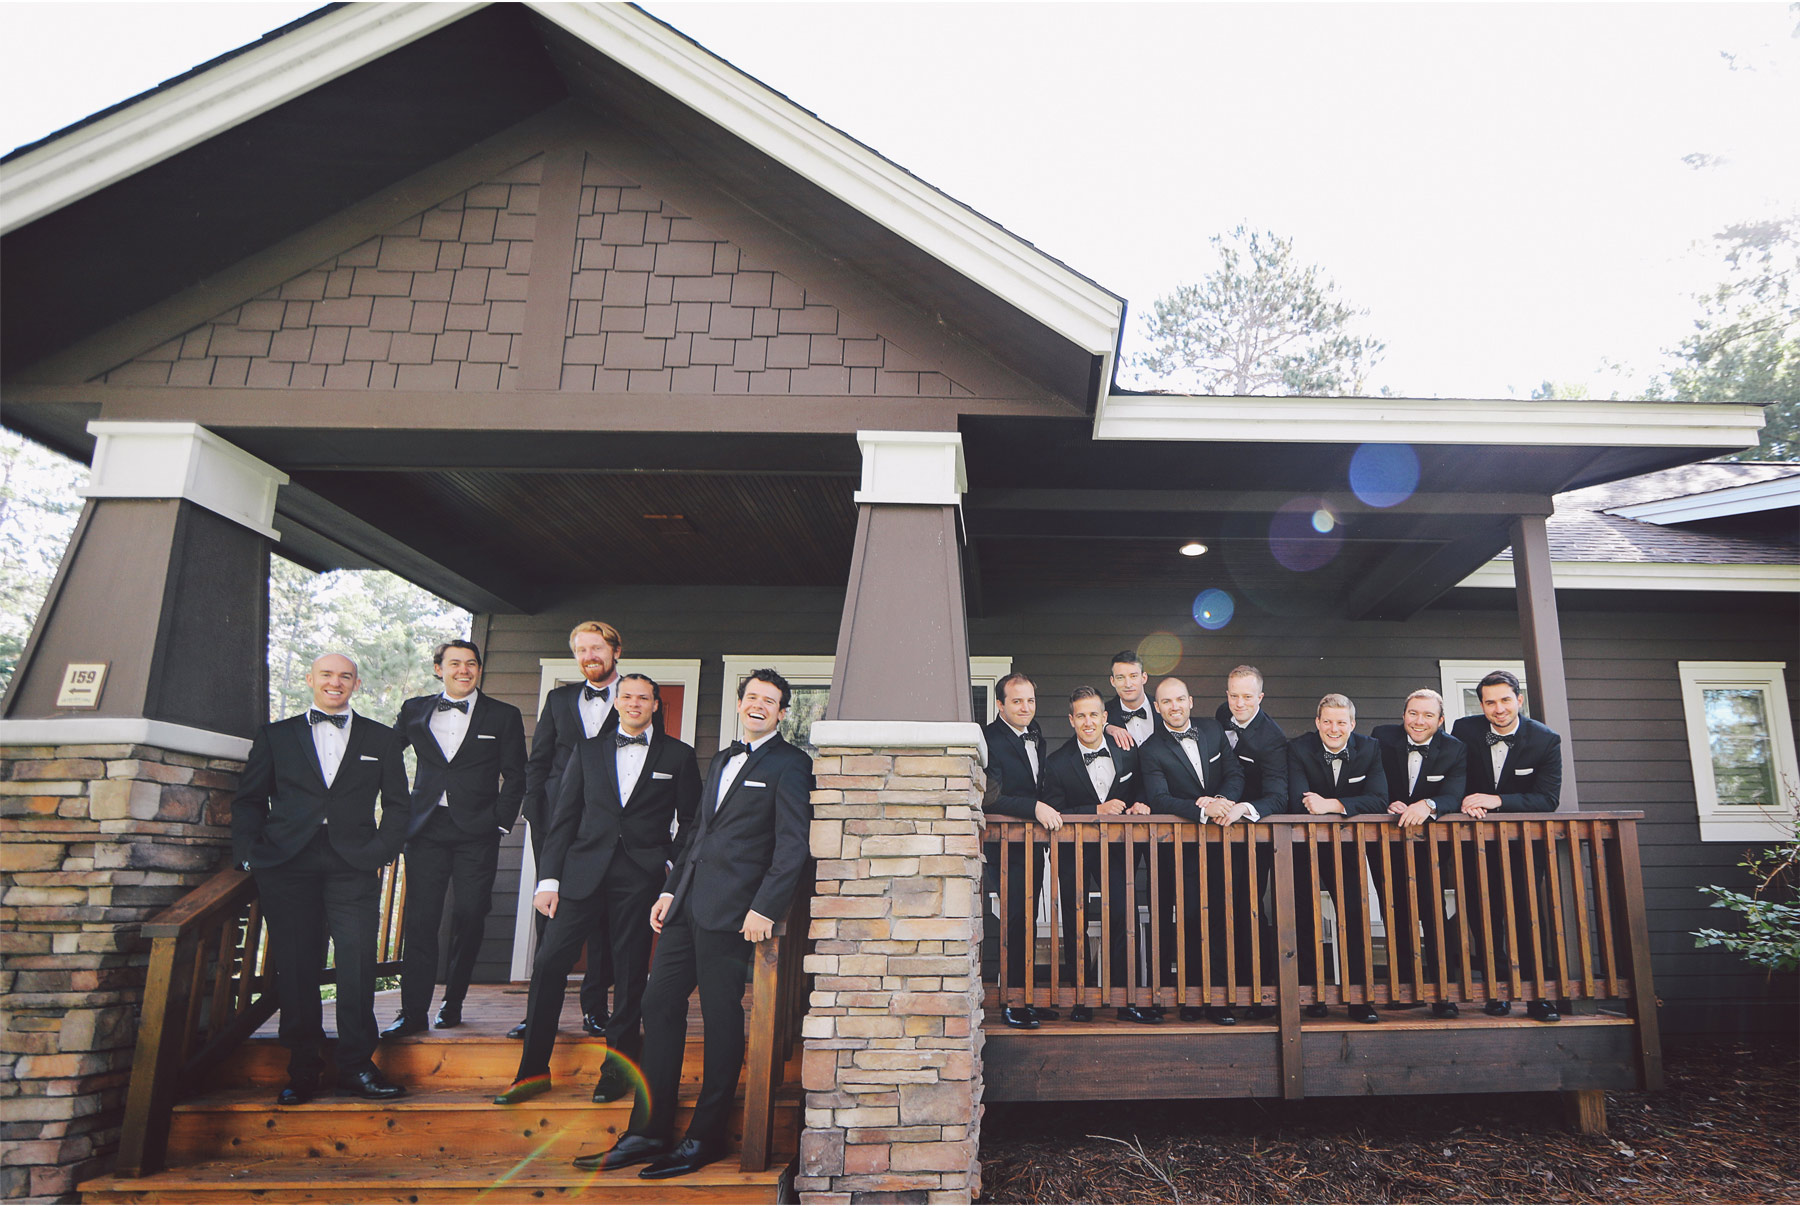 03-Brainerd-Minnesota-Wedding-Photography-by-Vick-Photography-Grand-View-Lodge-Getting-Ready-Groomsmen-Bethany-and-Anthony.jpg